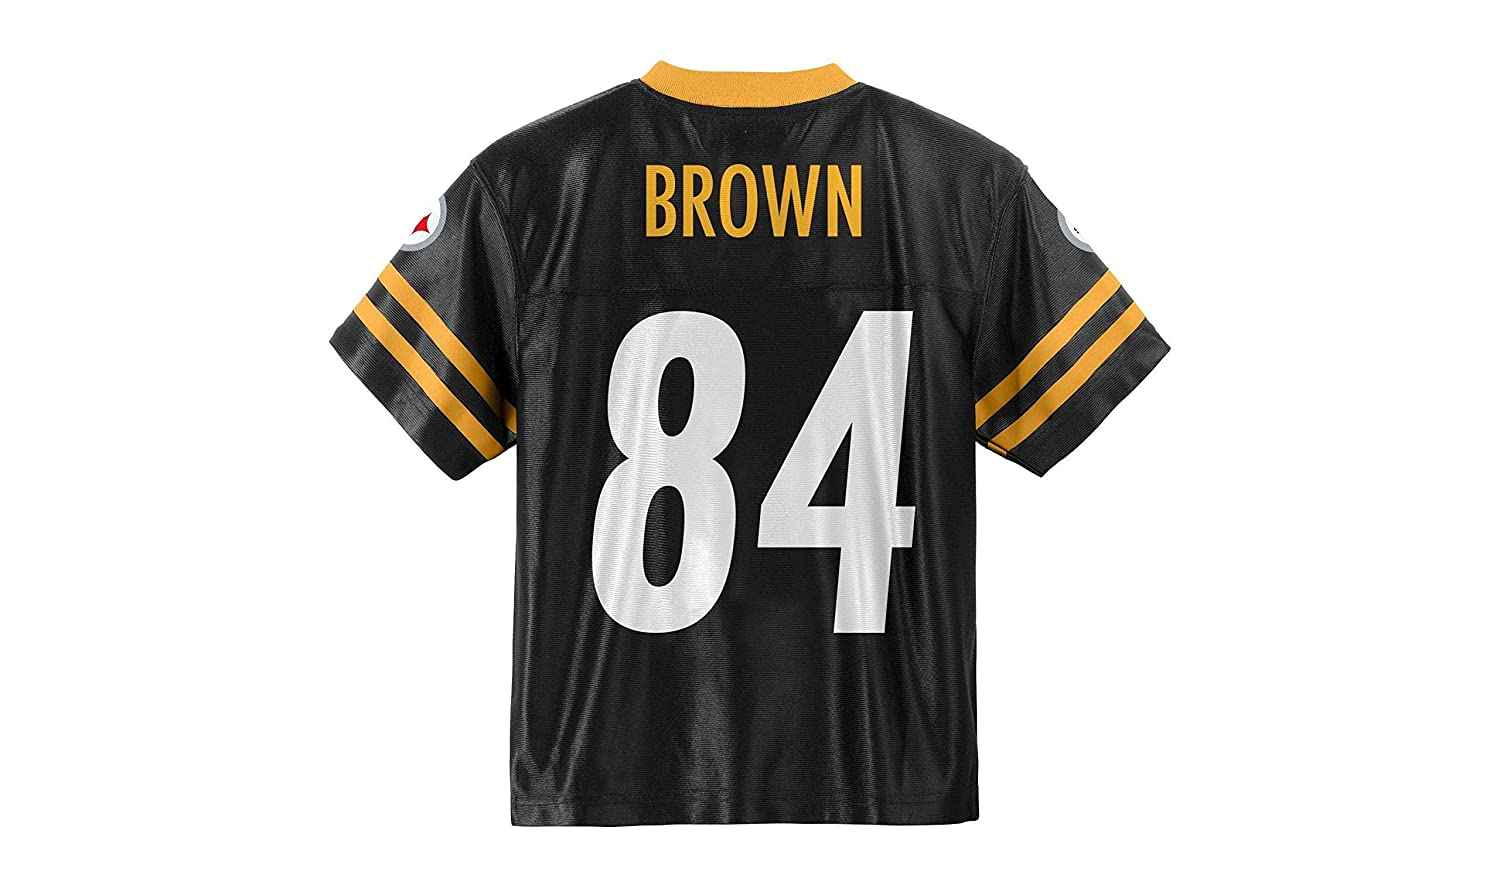 481973f52 Amazon.com   Antonio Brown Pittsburgh Steelers Black Youth Jersey X-Large  18-20   Sports   Outdoors